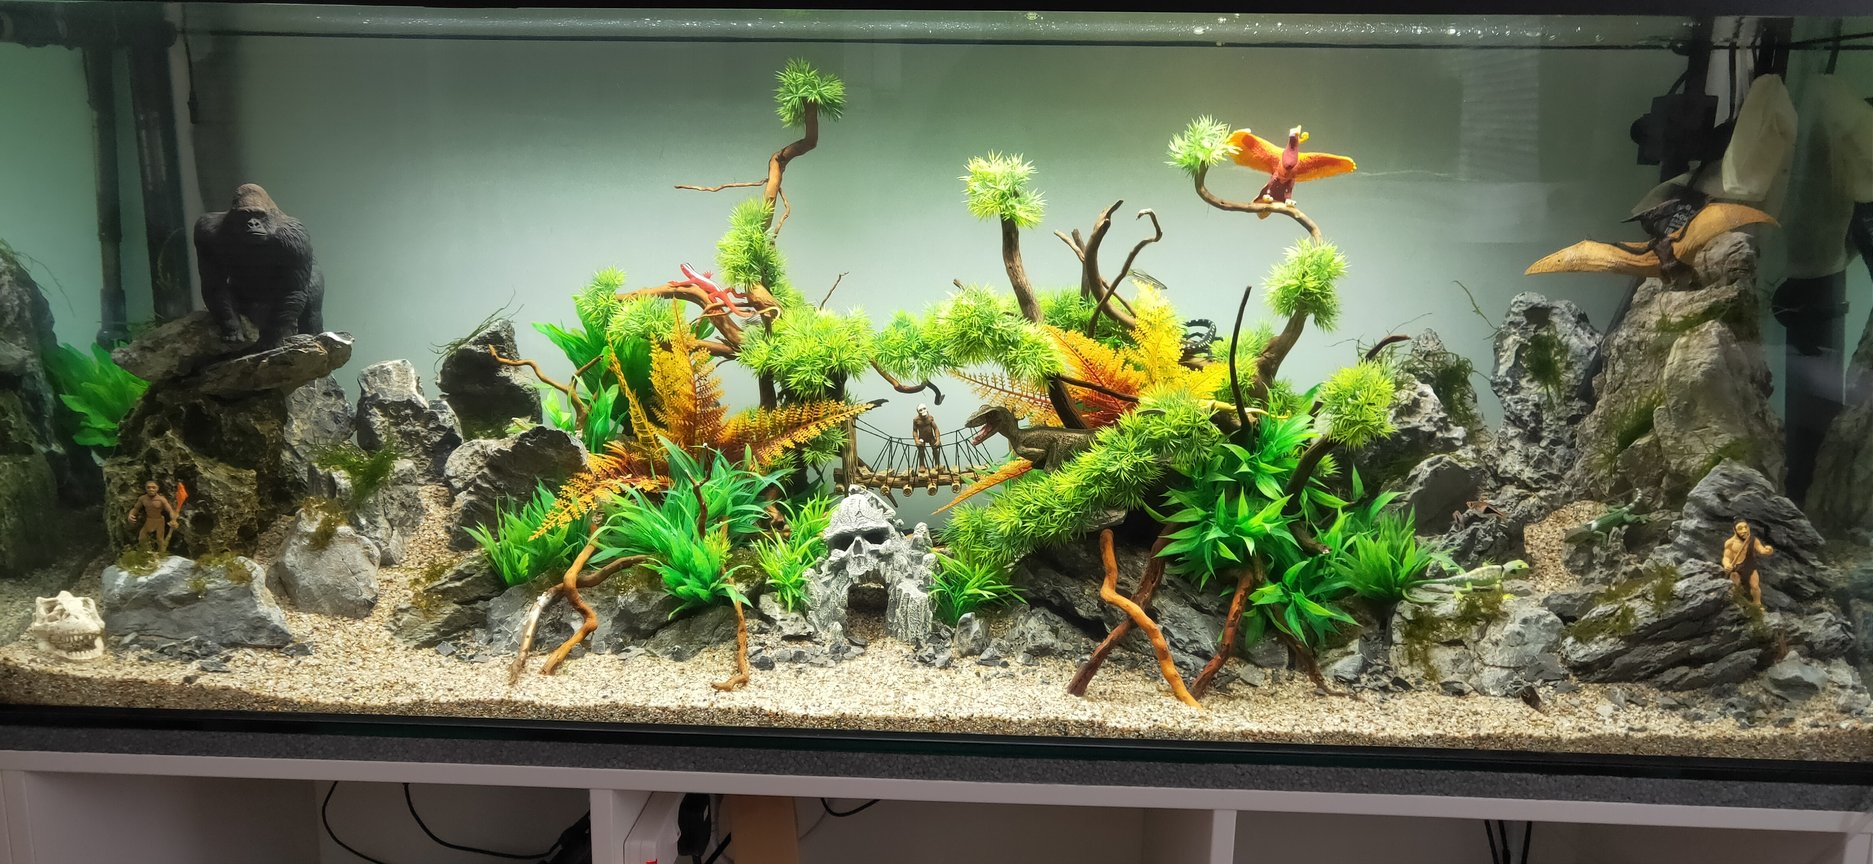 75 gallons freshwater fish tank (mostly fish and non-living decorations) - my tank